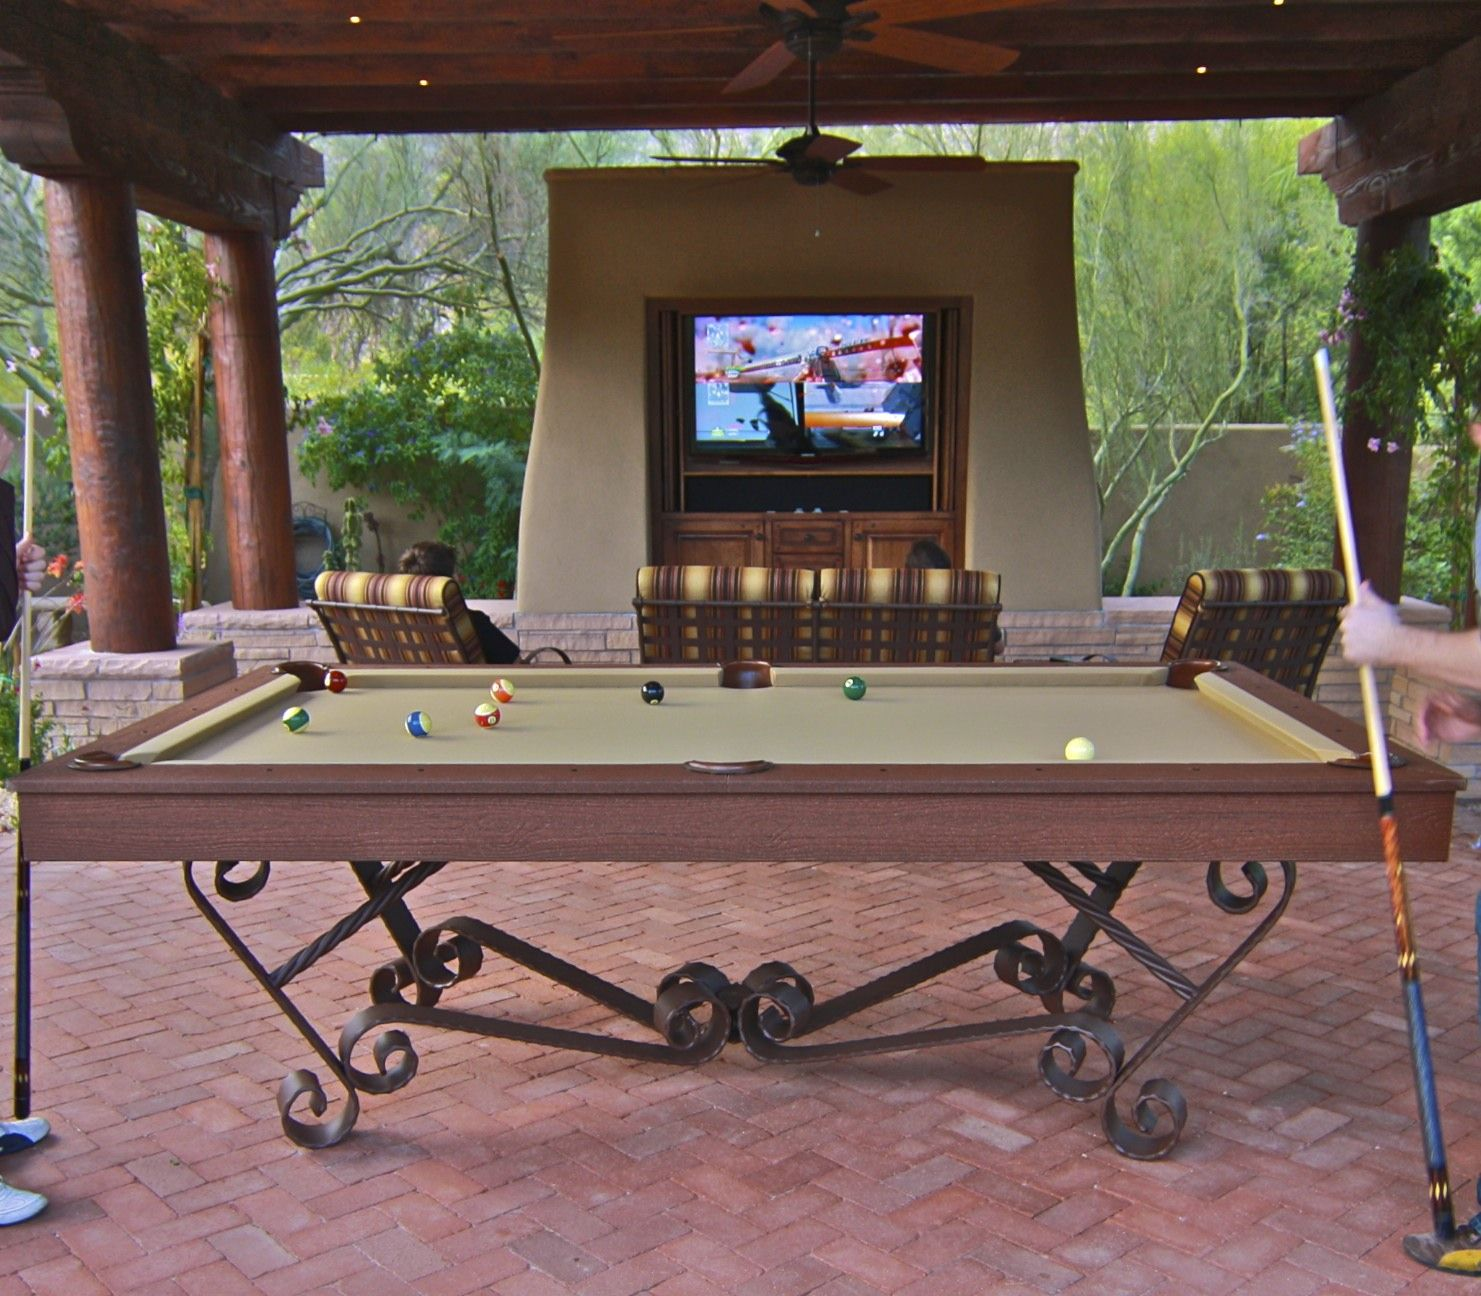 Pool Table Outdoors How Awesome But Adjust Shots For Windage